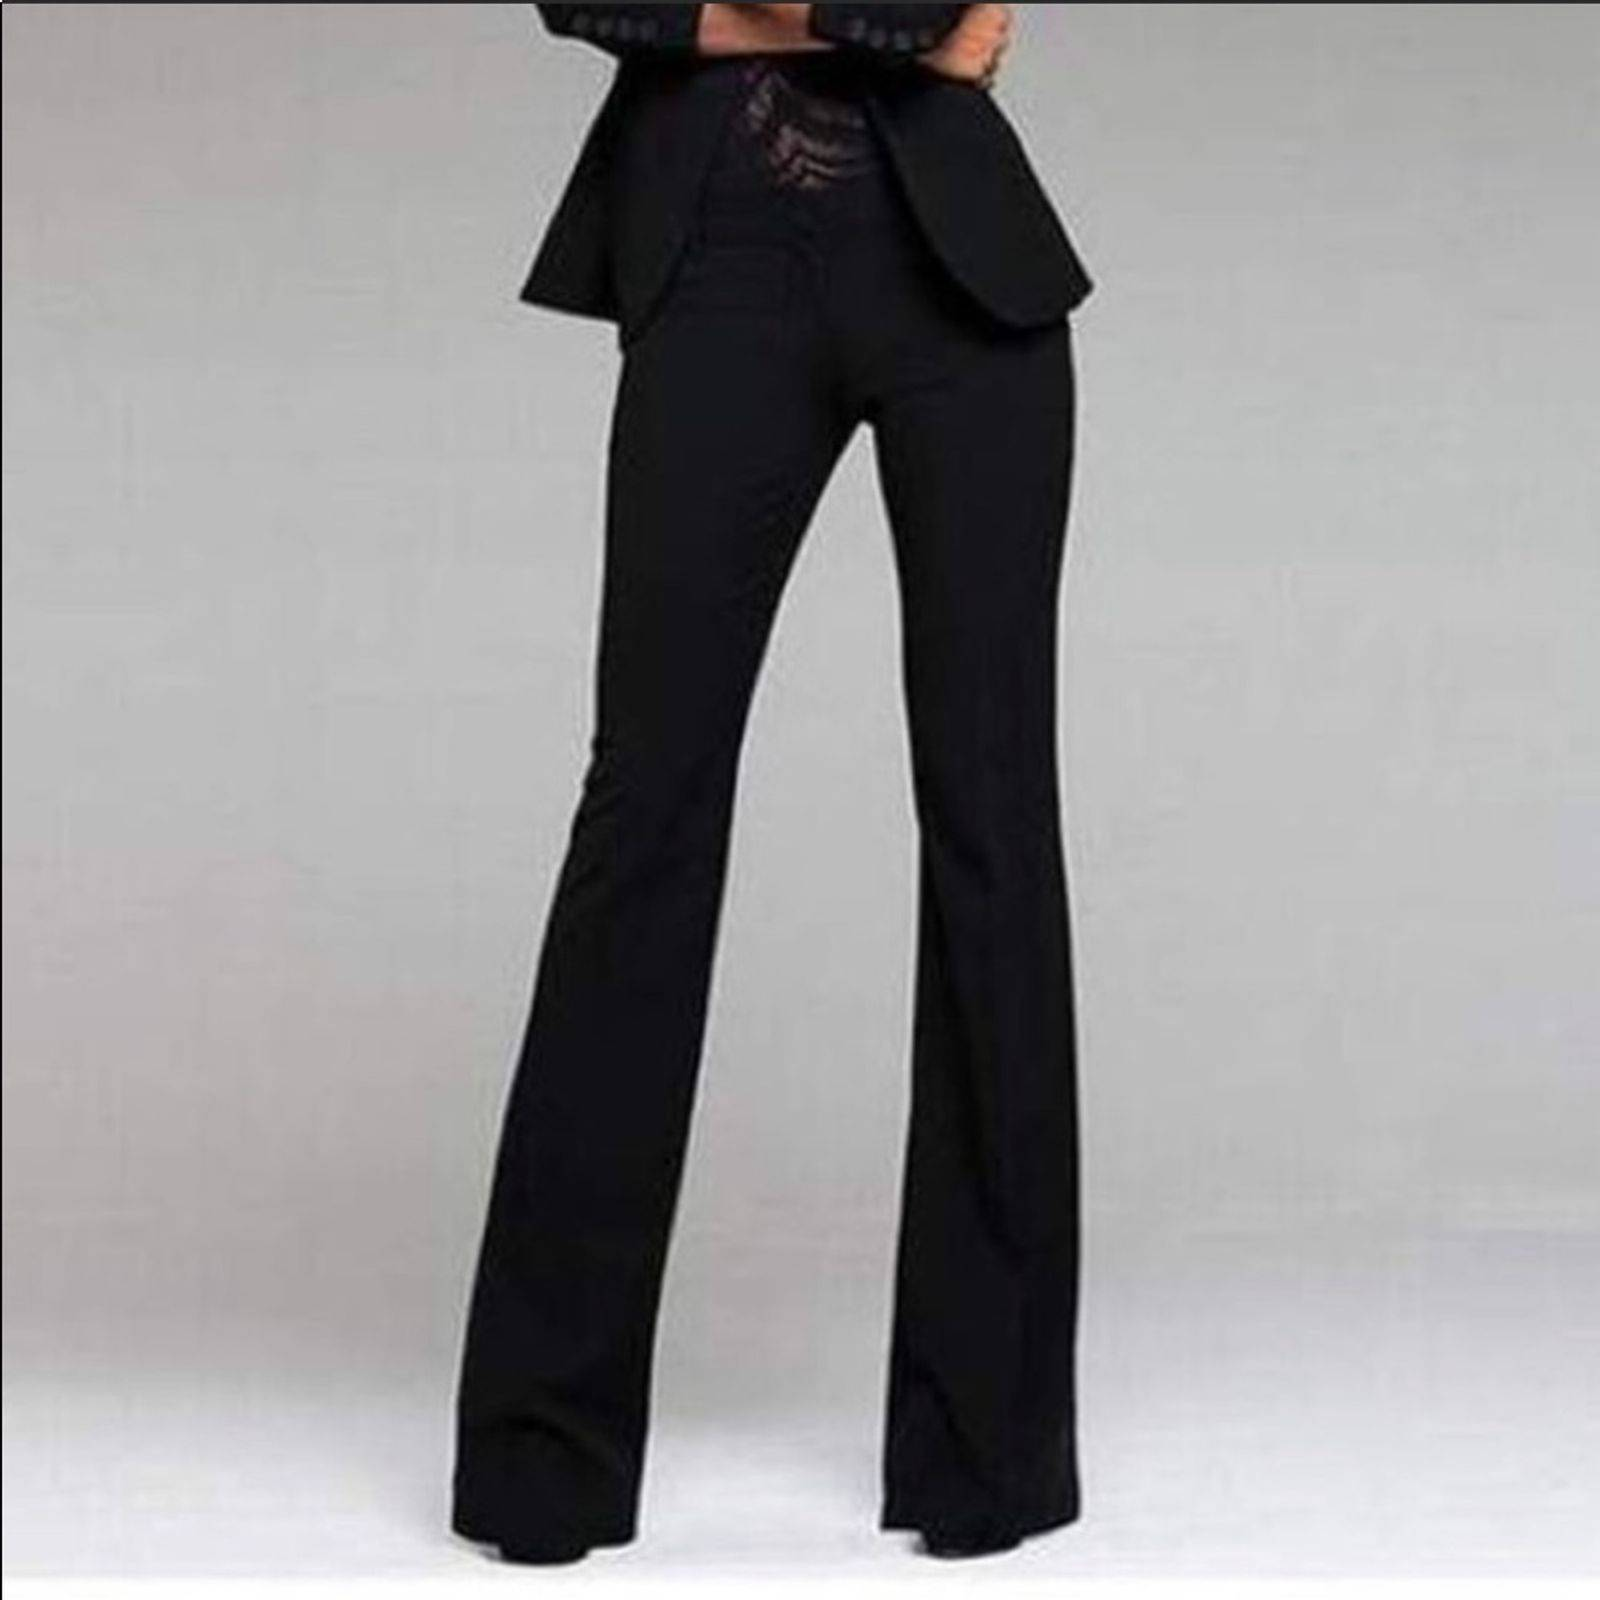 Body by Victoria Dress Bootcut Pants